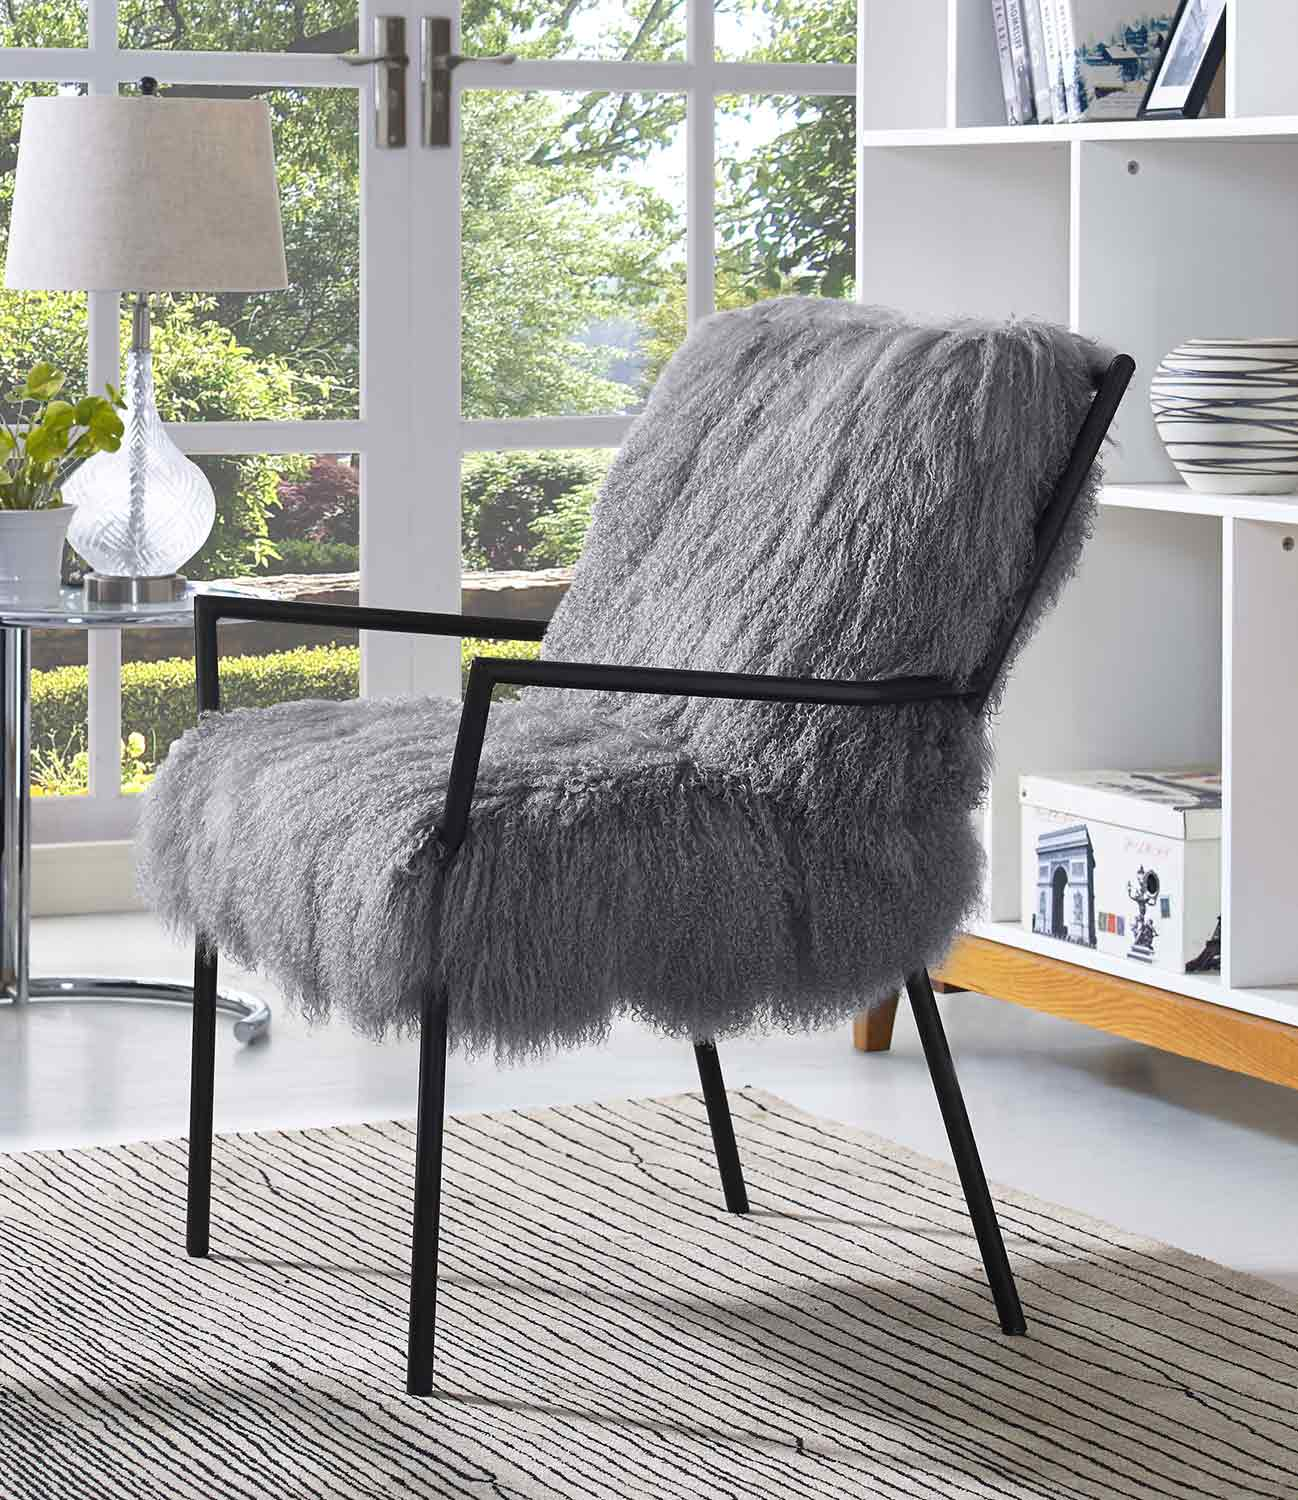 Tov Furniture Lena Sheepskin Chair Grey Black A130 At